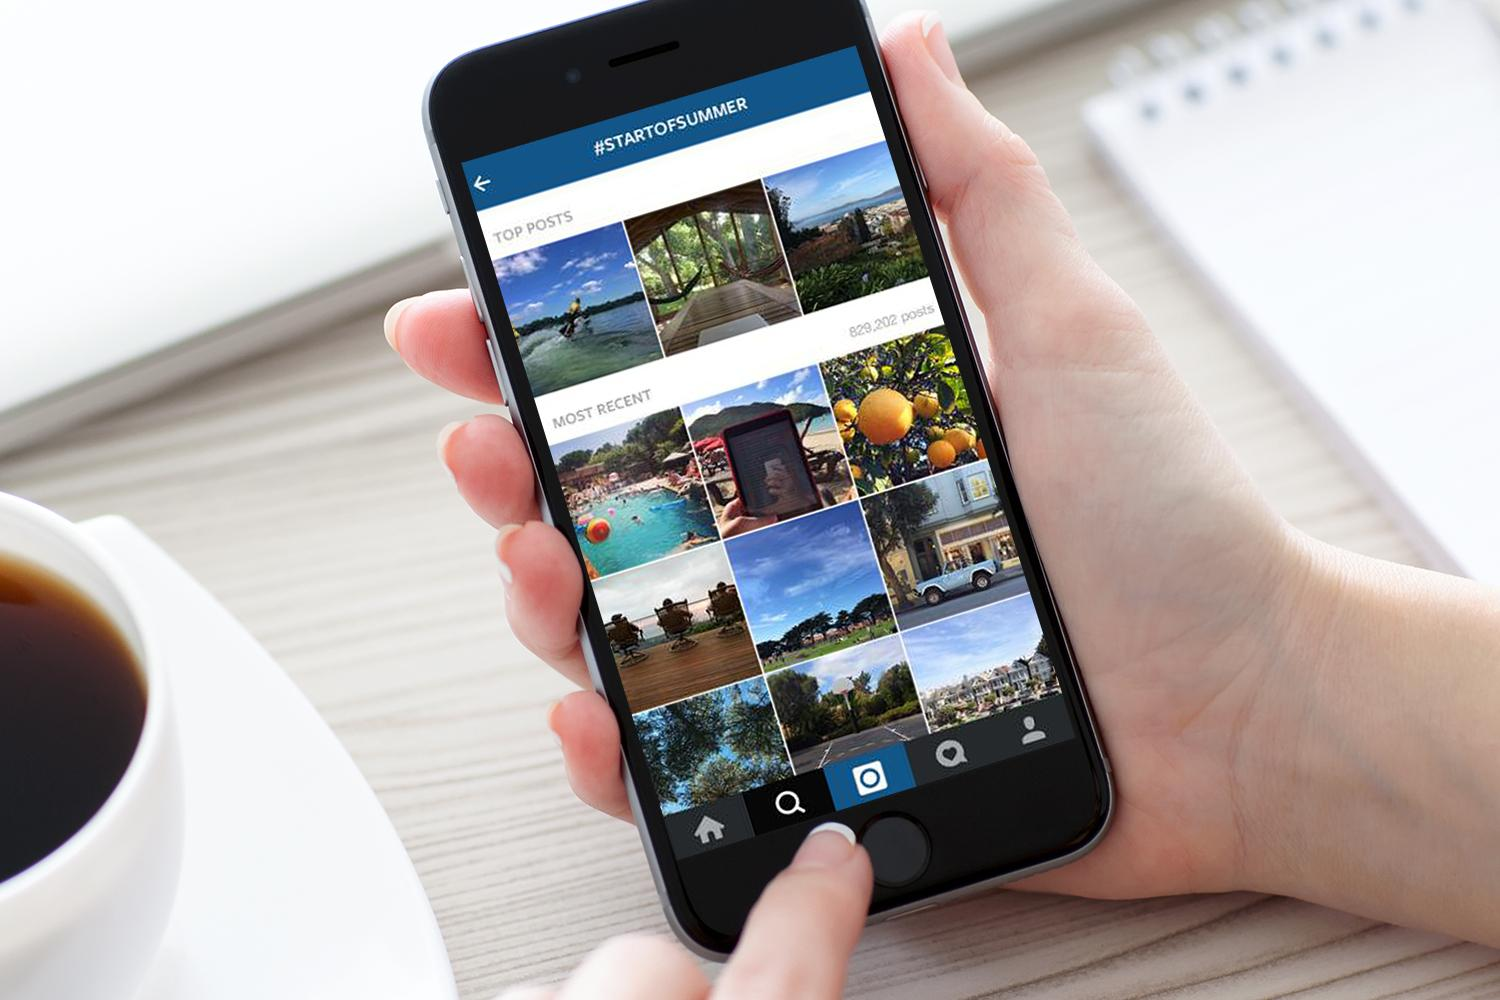 Facebook Pays 10-Year-Old $10,000 for Exposing Instagram glitch